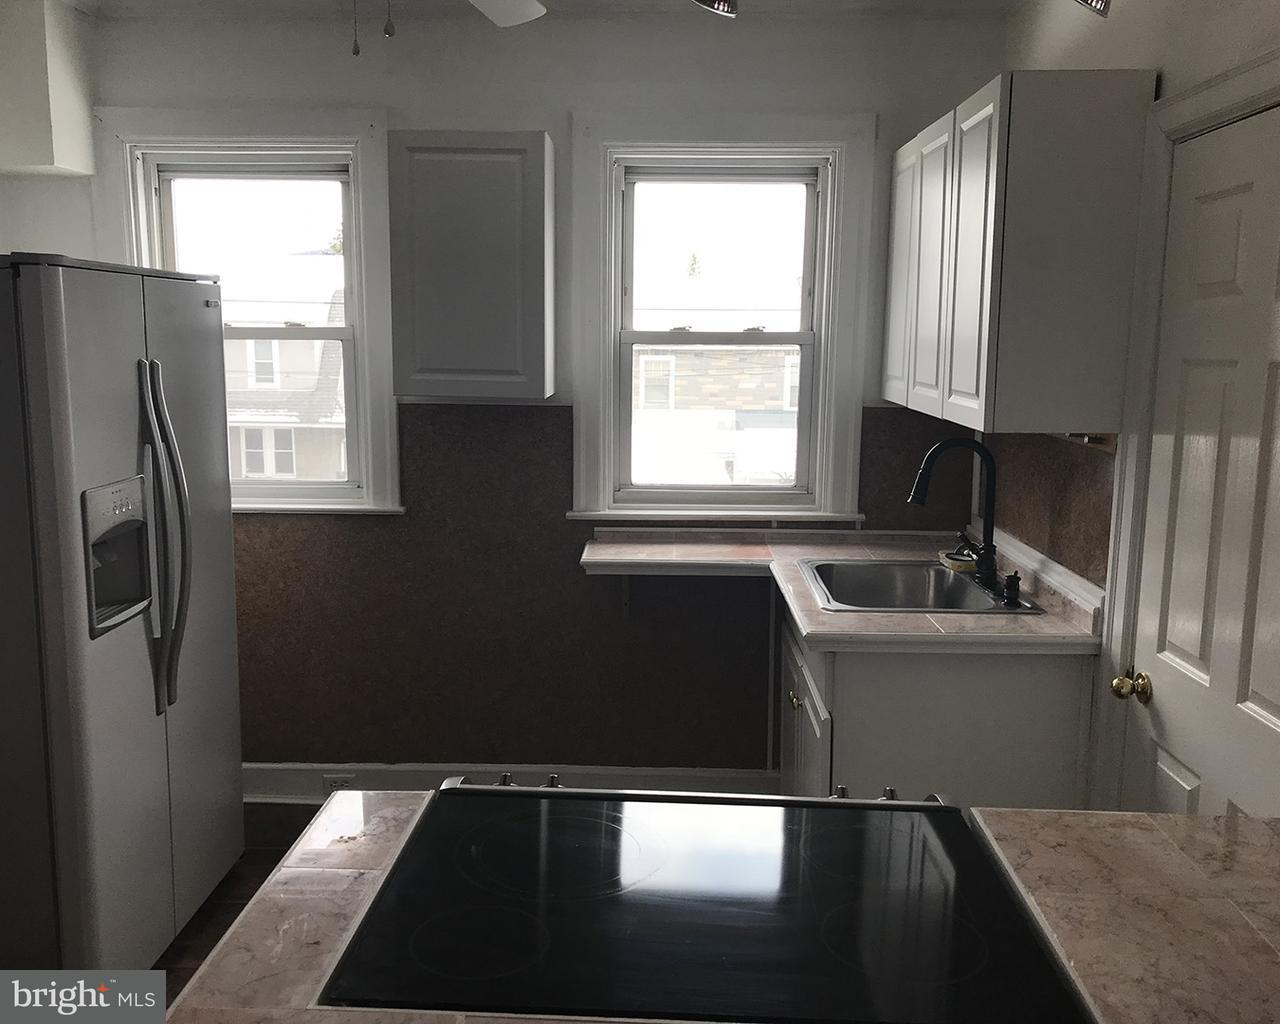 111 N 25TH ST, READING - Listed at $123,000, READING